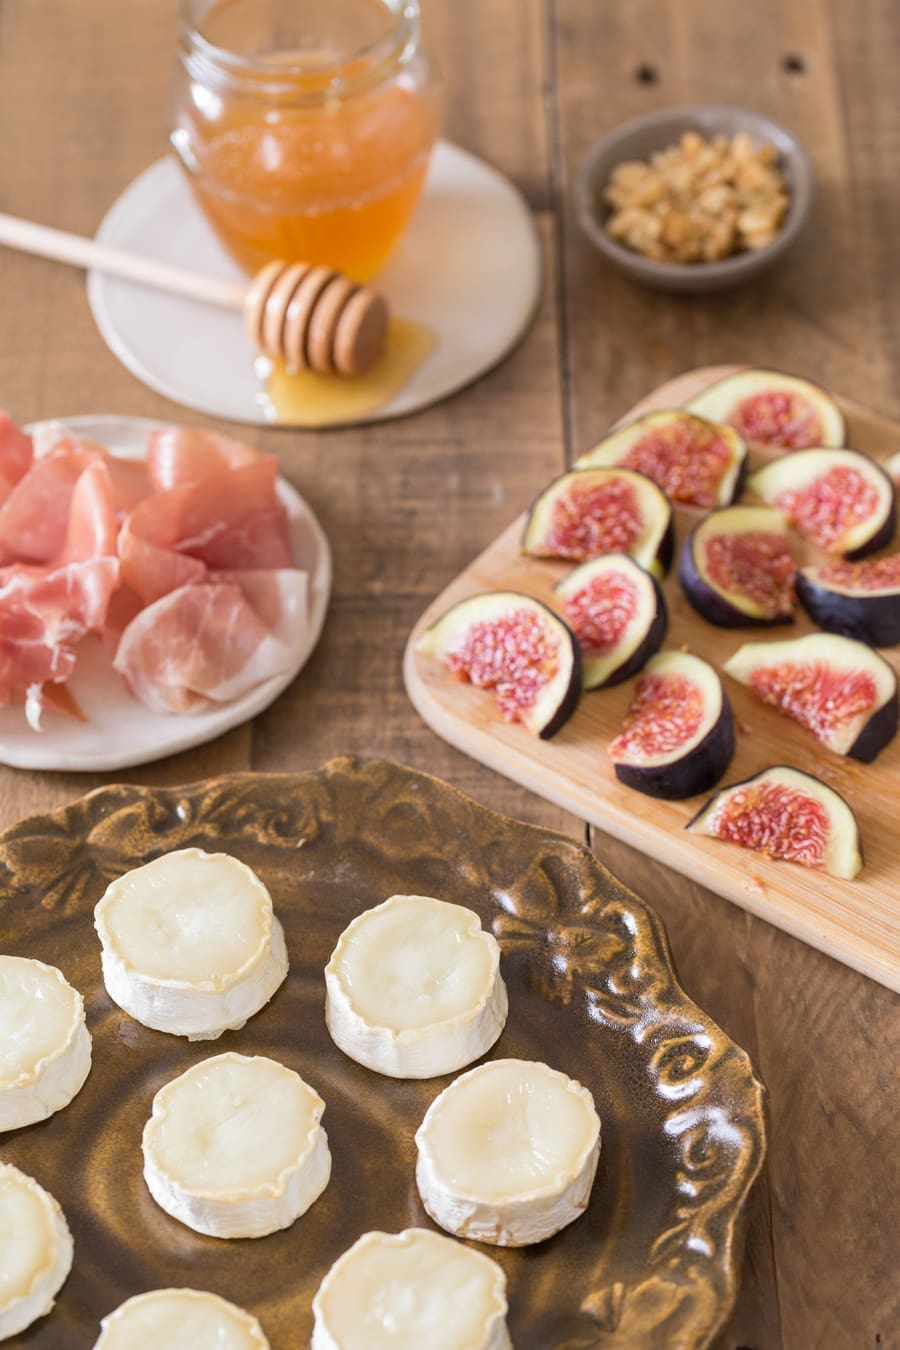 Baked goat cheese log, sliced figs, prosciutto and honey.